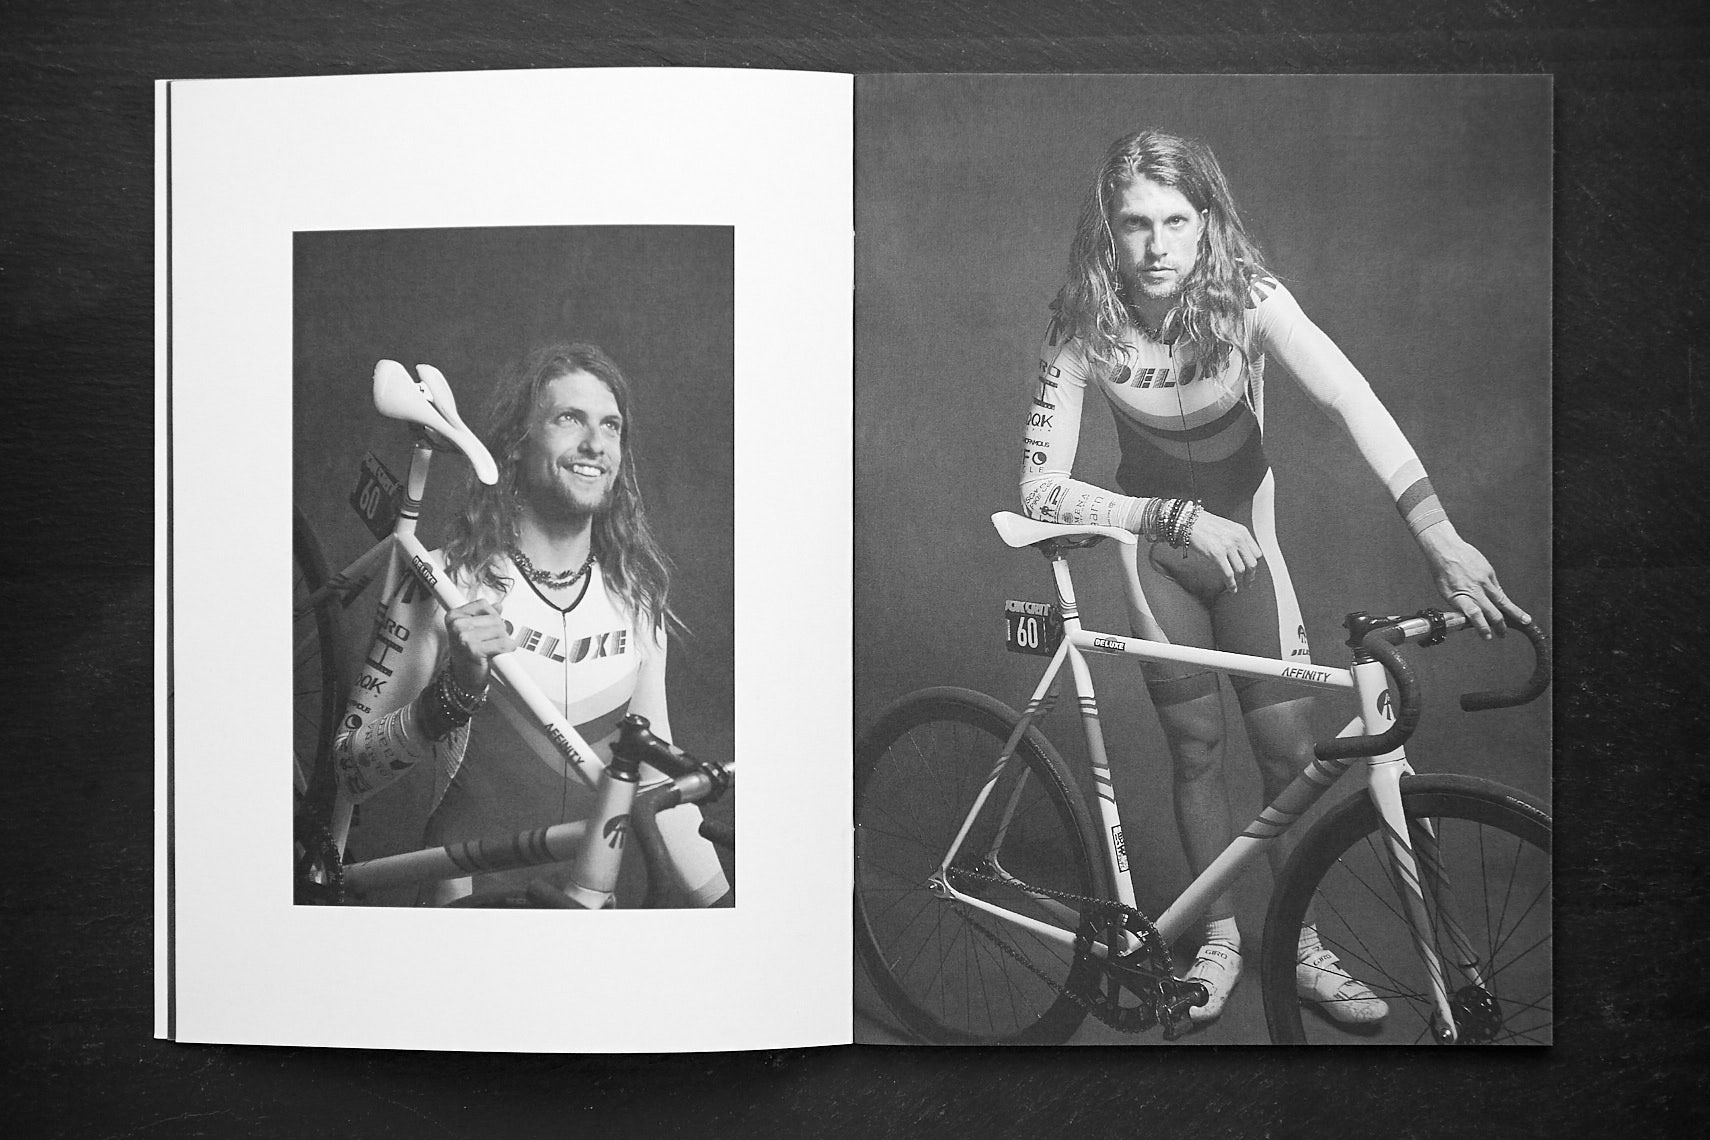 Red Hook Criterium Portraits